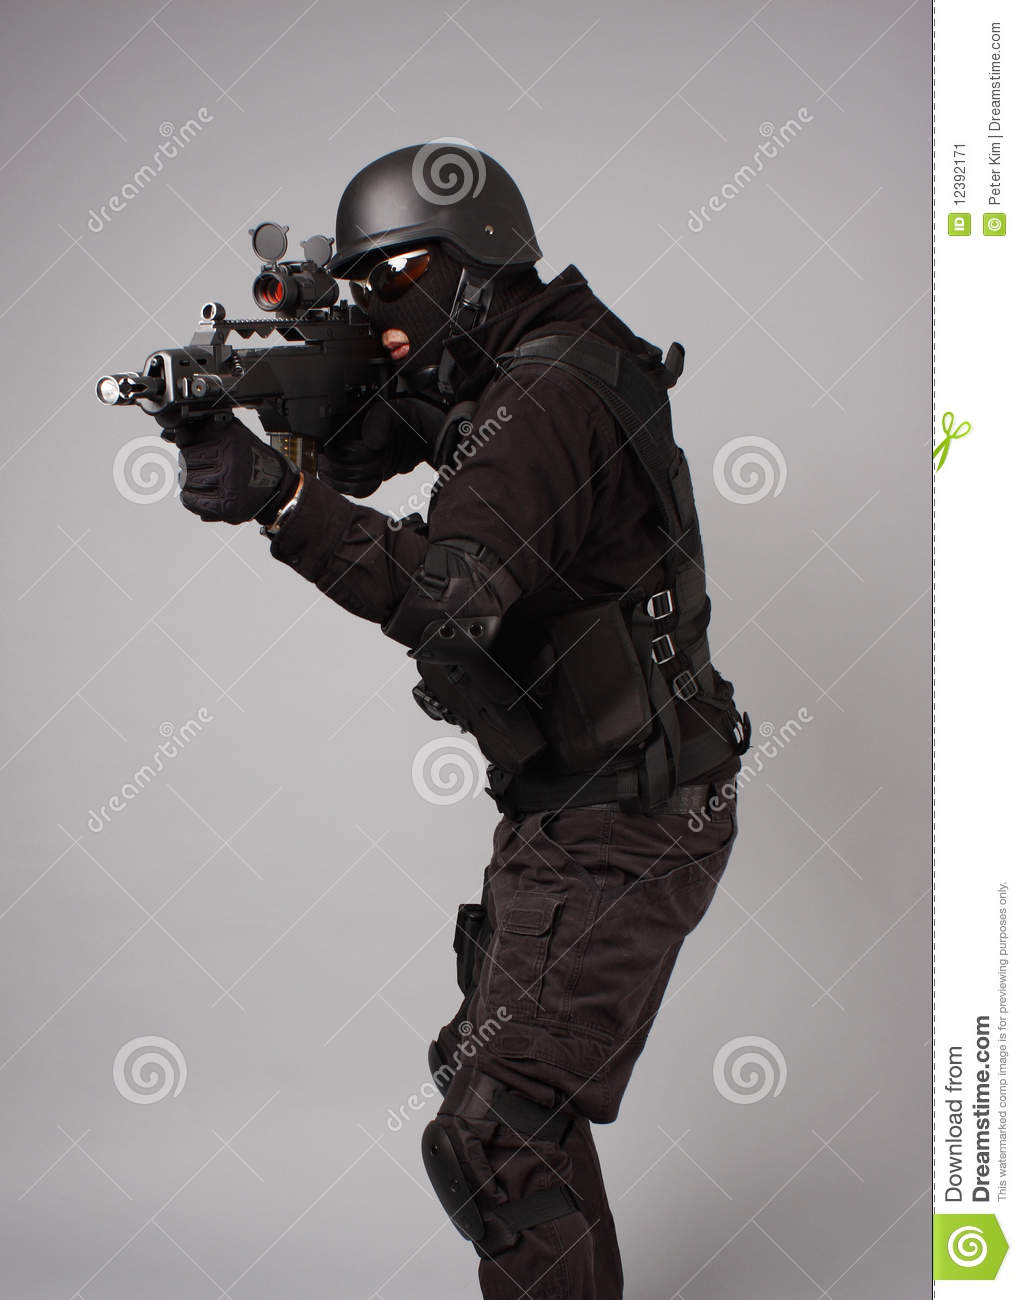 how to become a swat police officer